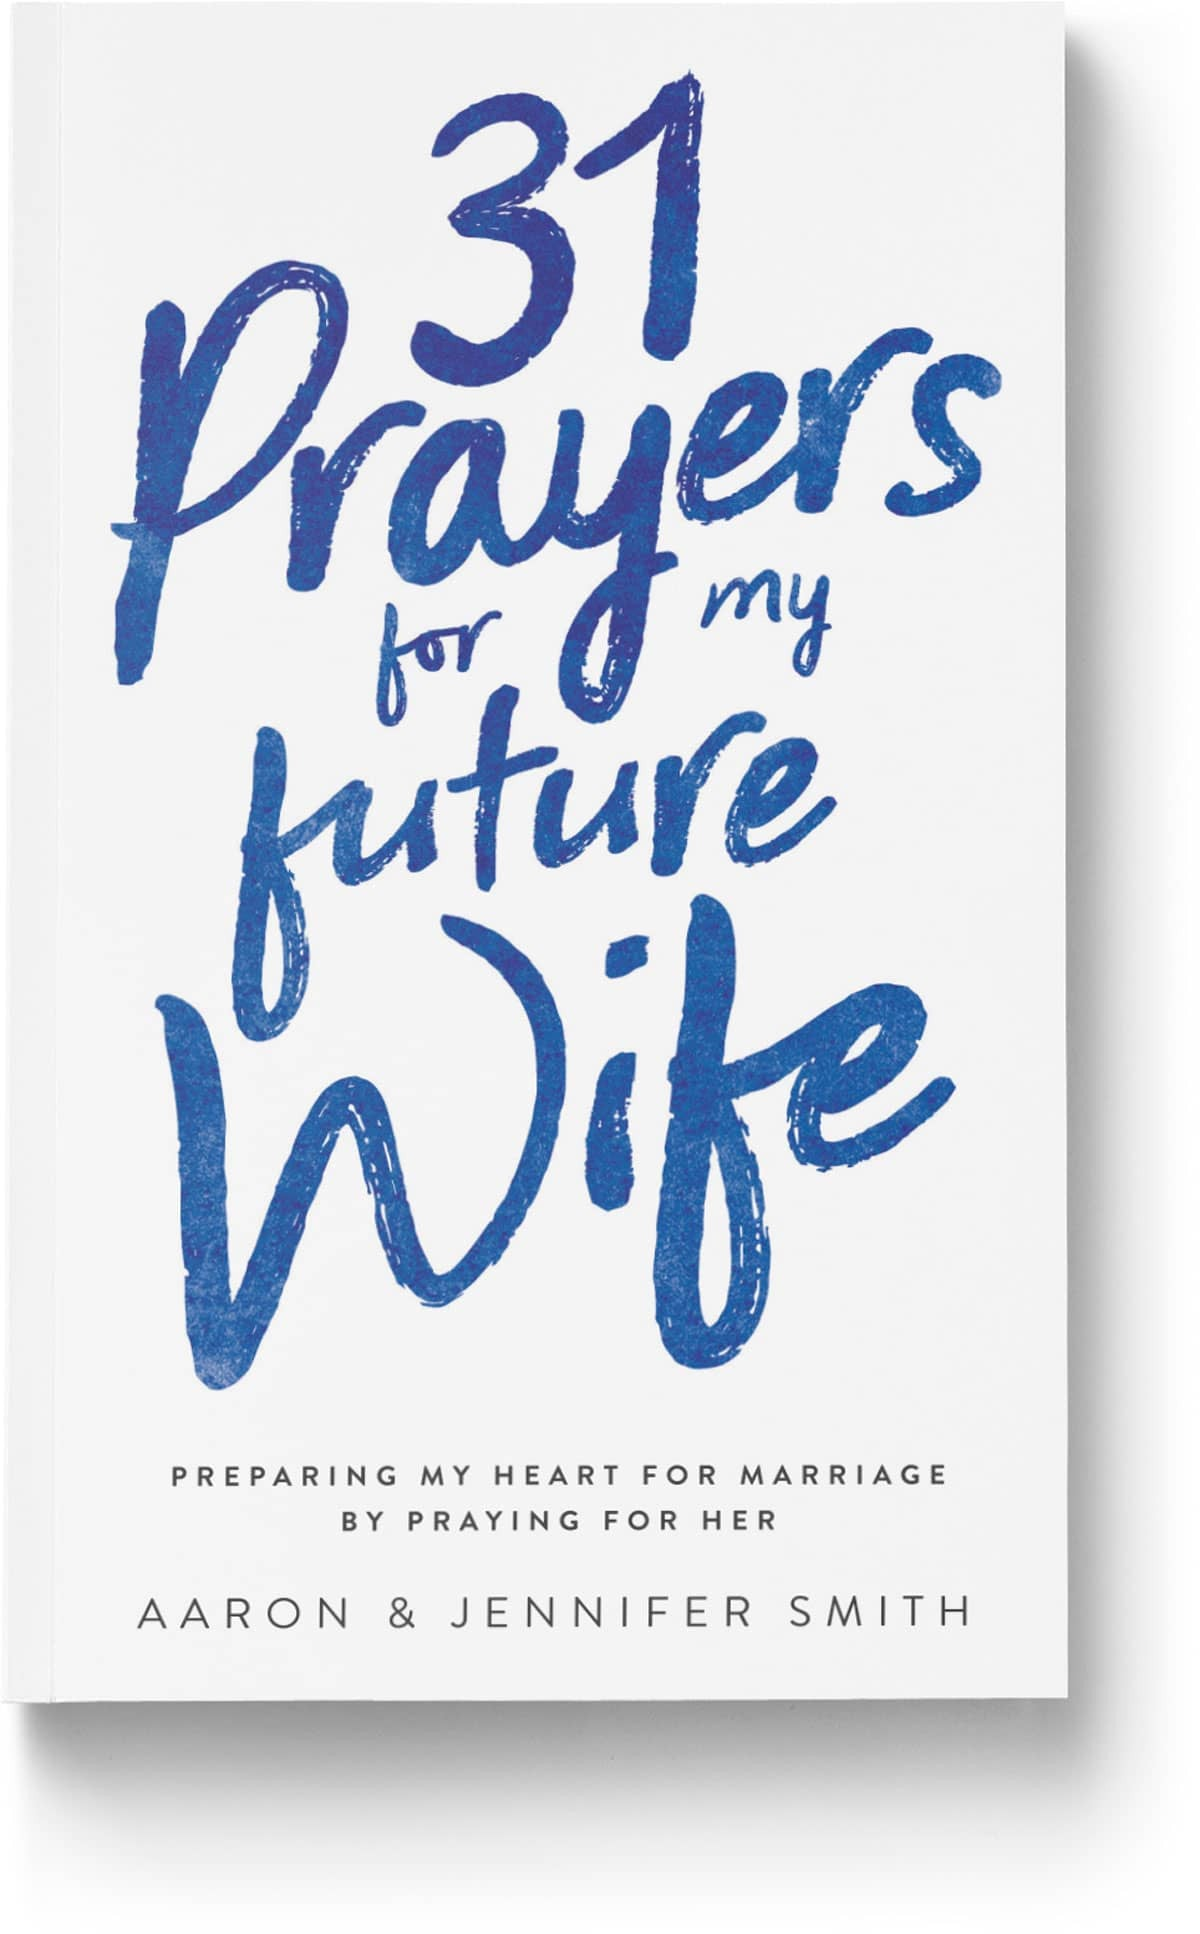 Prayer for future marriage